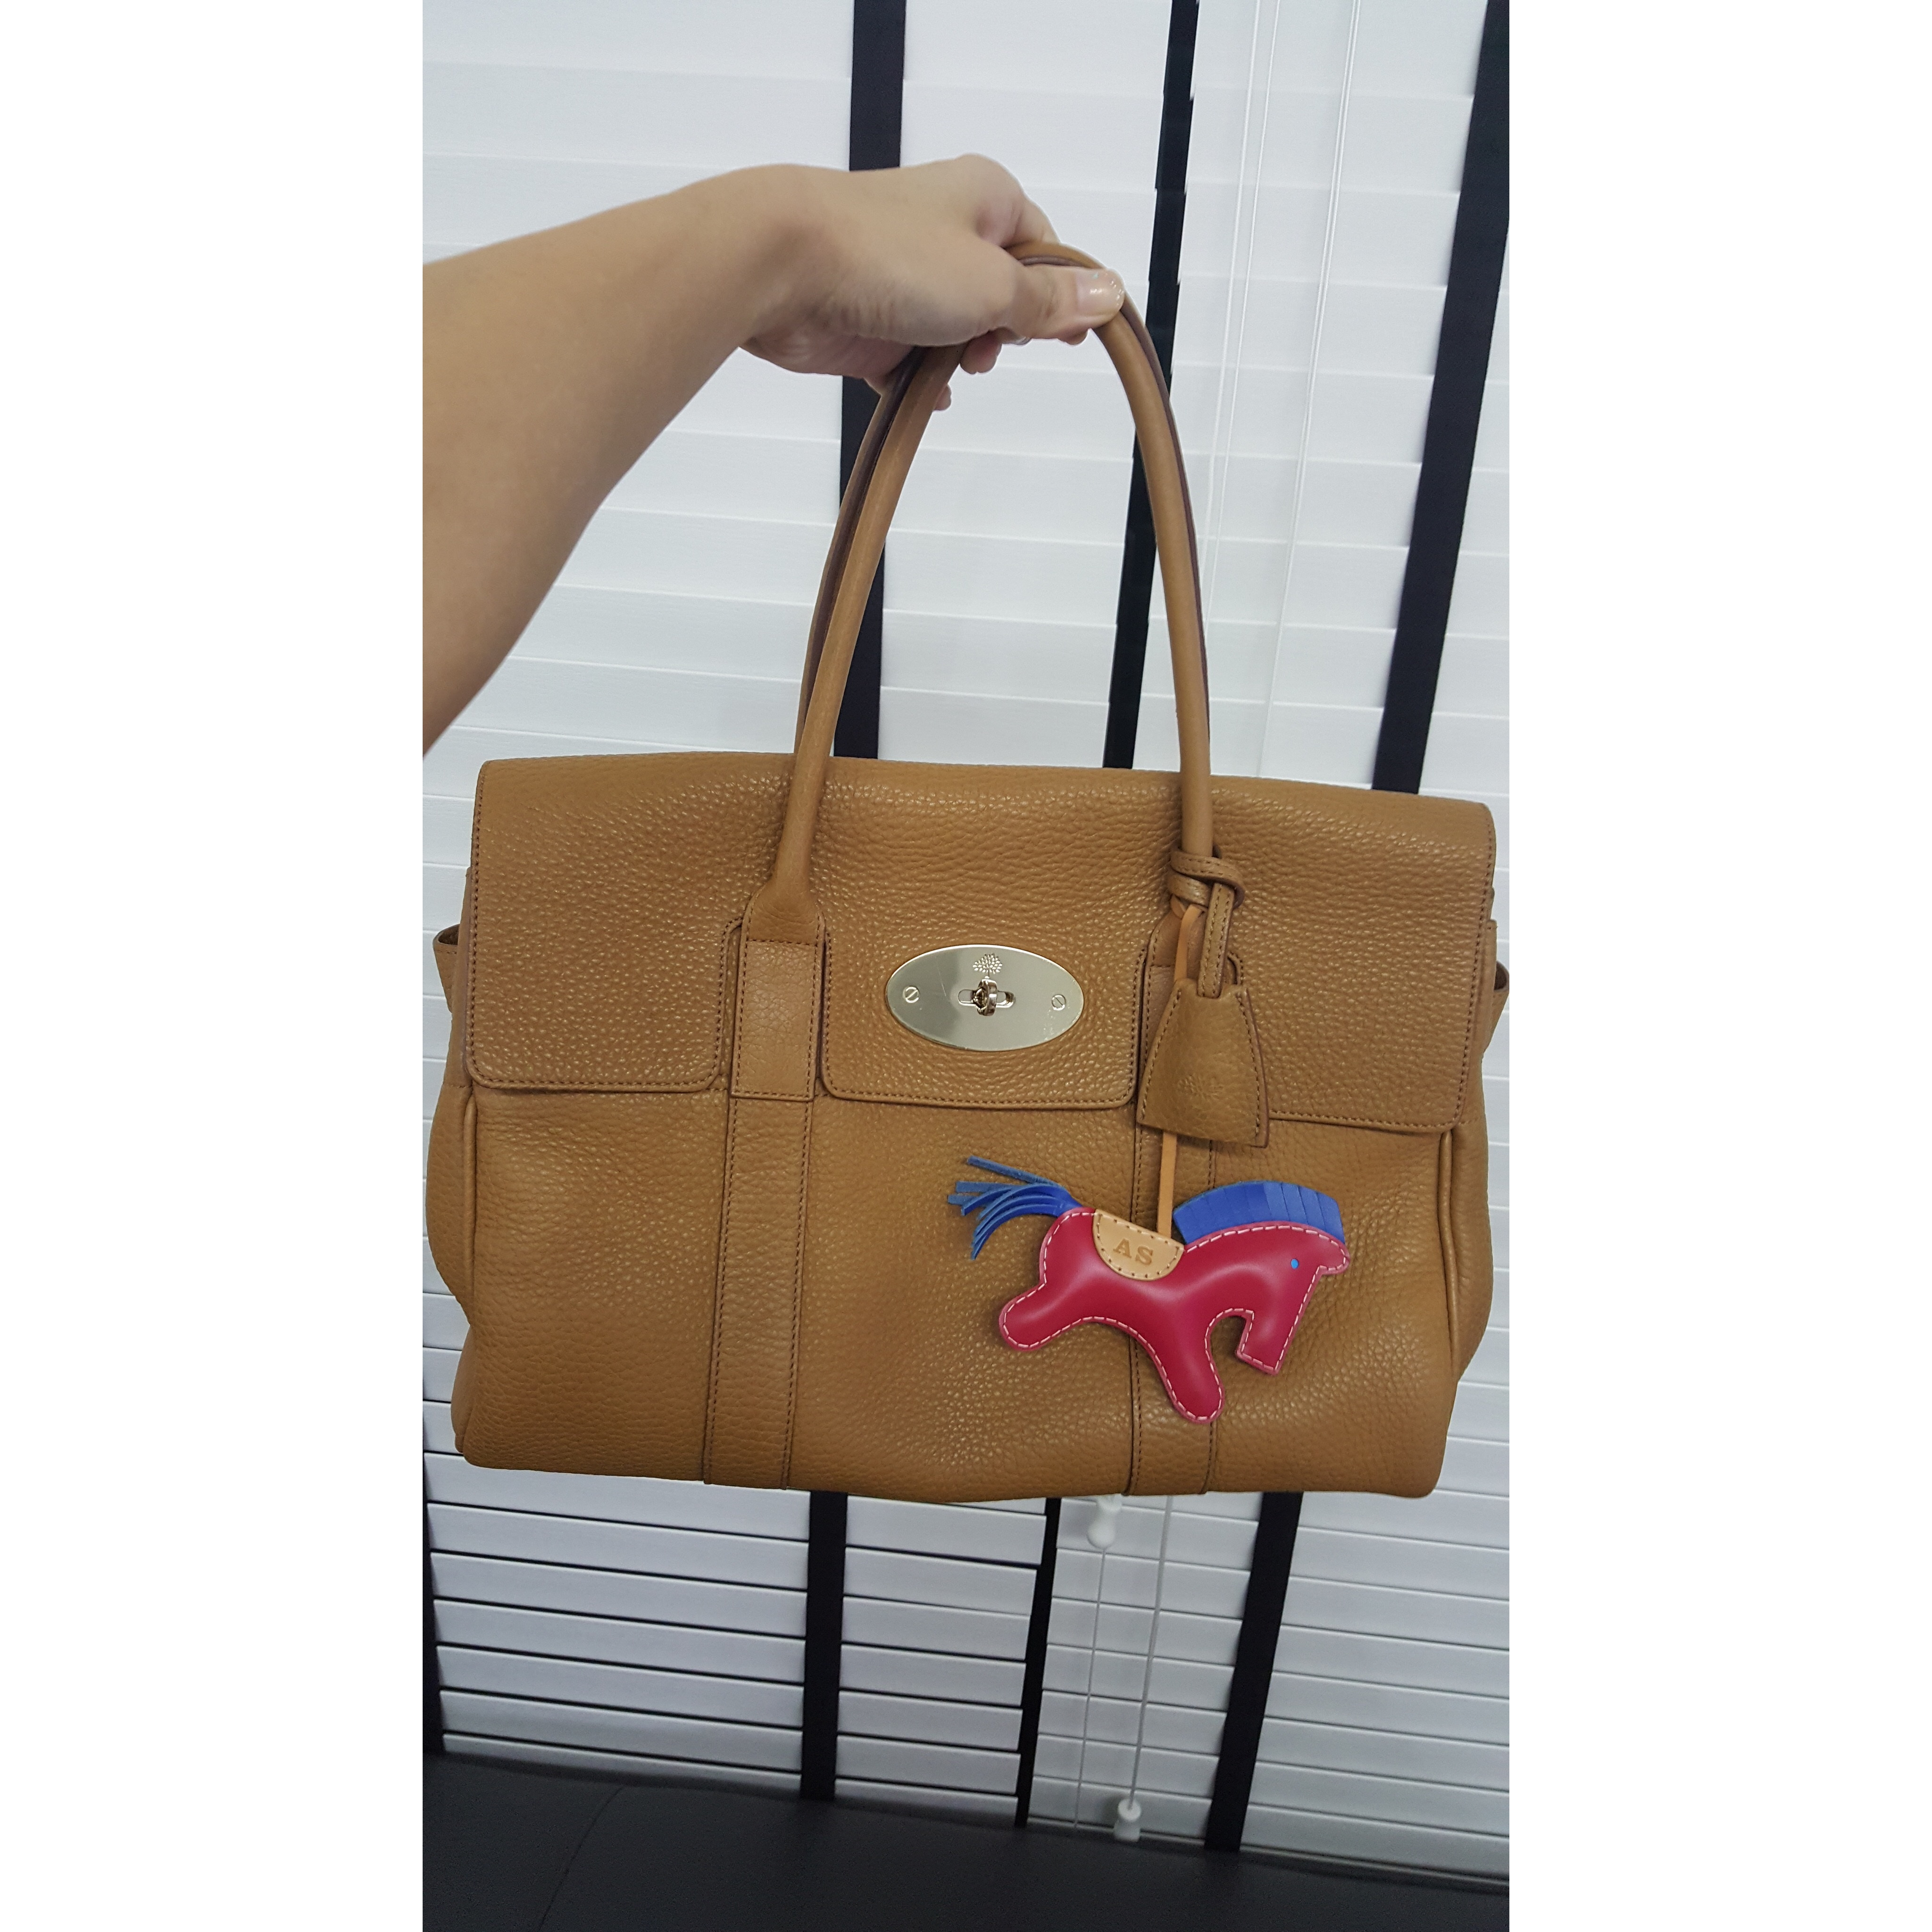 ... purchase mulbery bayswater bag size standard color camel brown in ghw  leather calfskin condition 9 10 d3f05a03cddfe